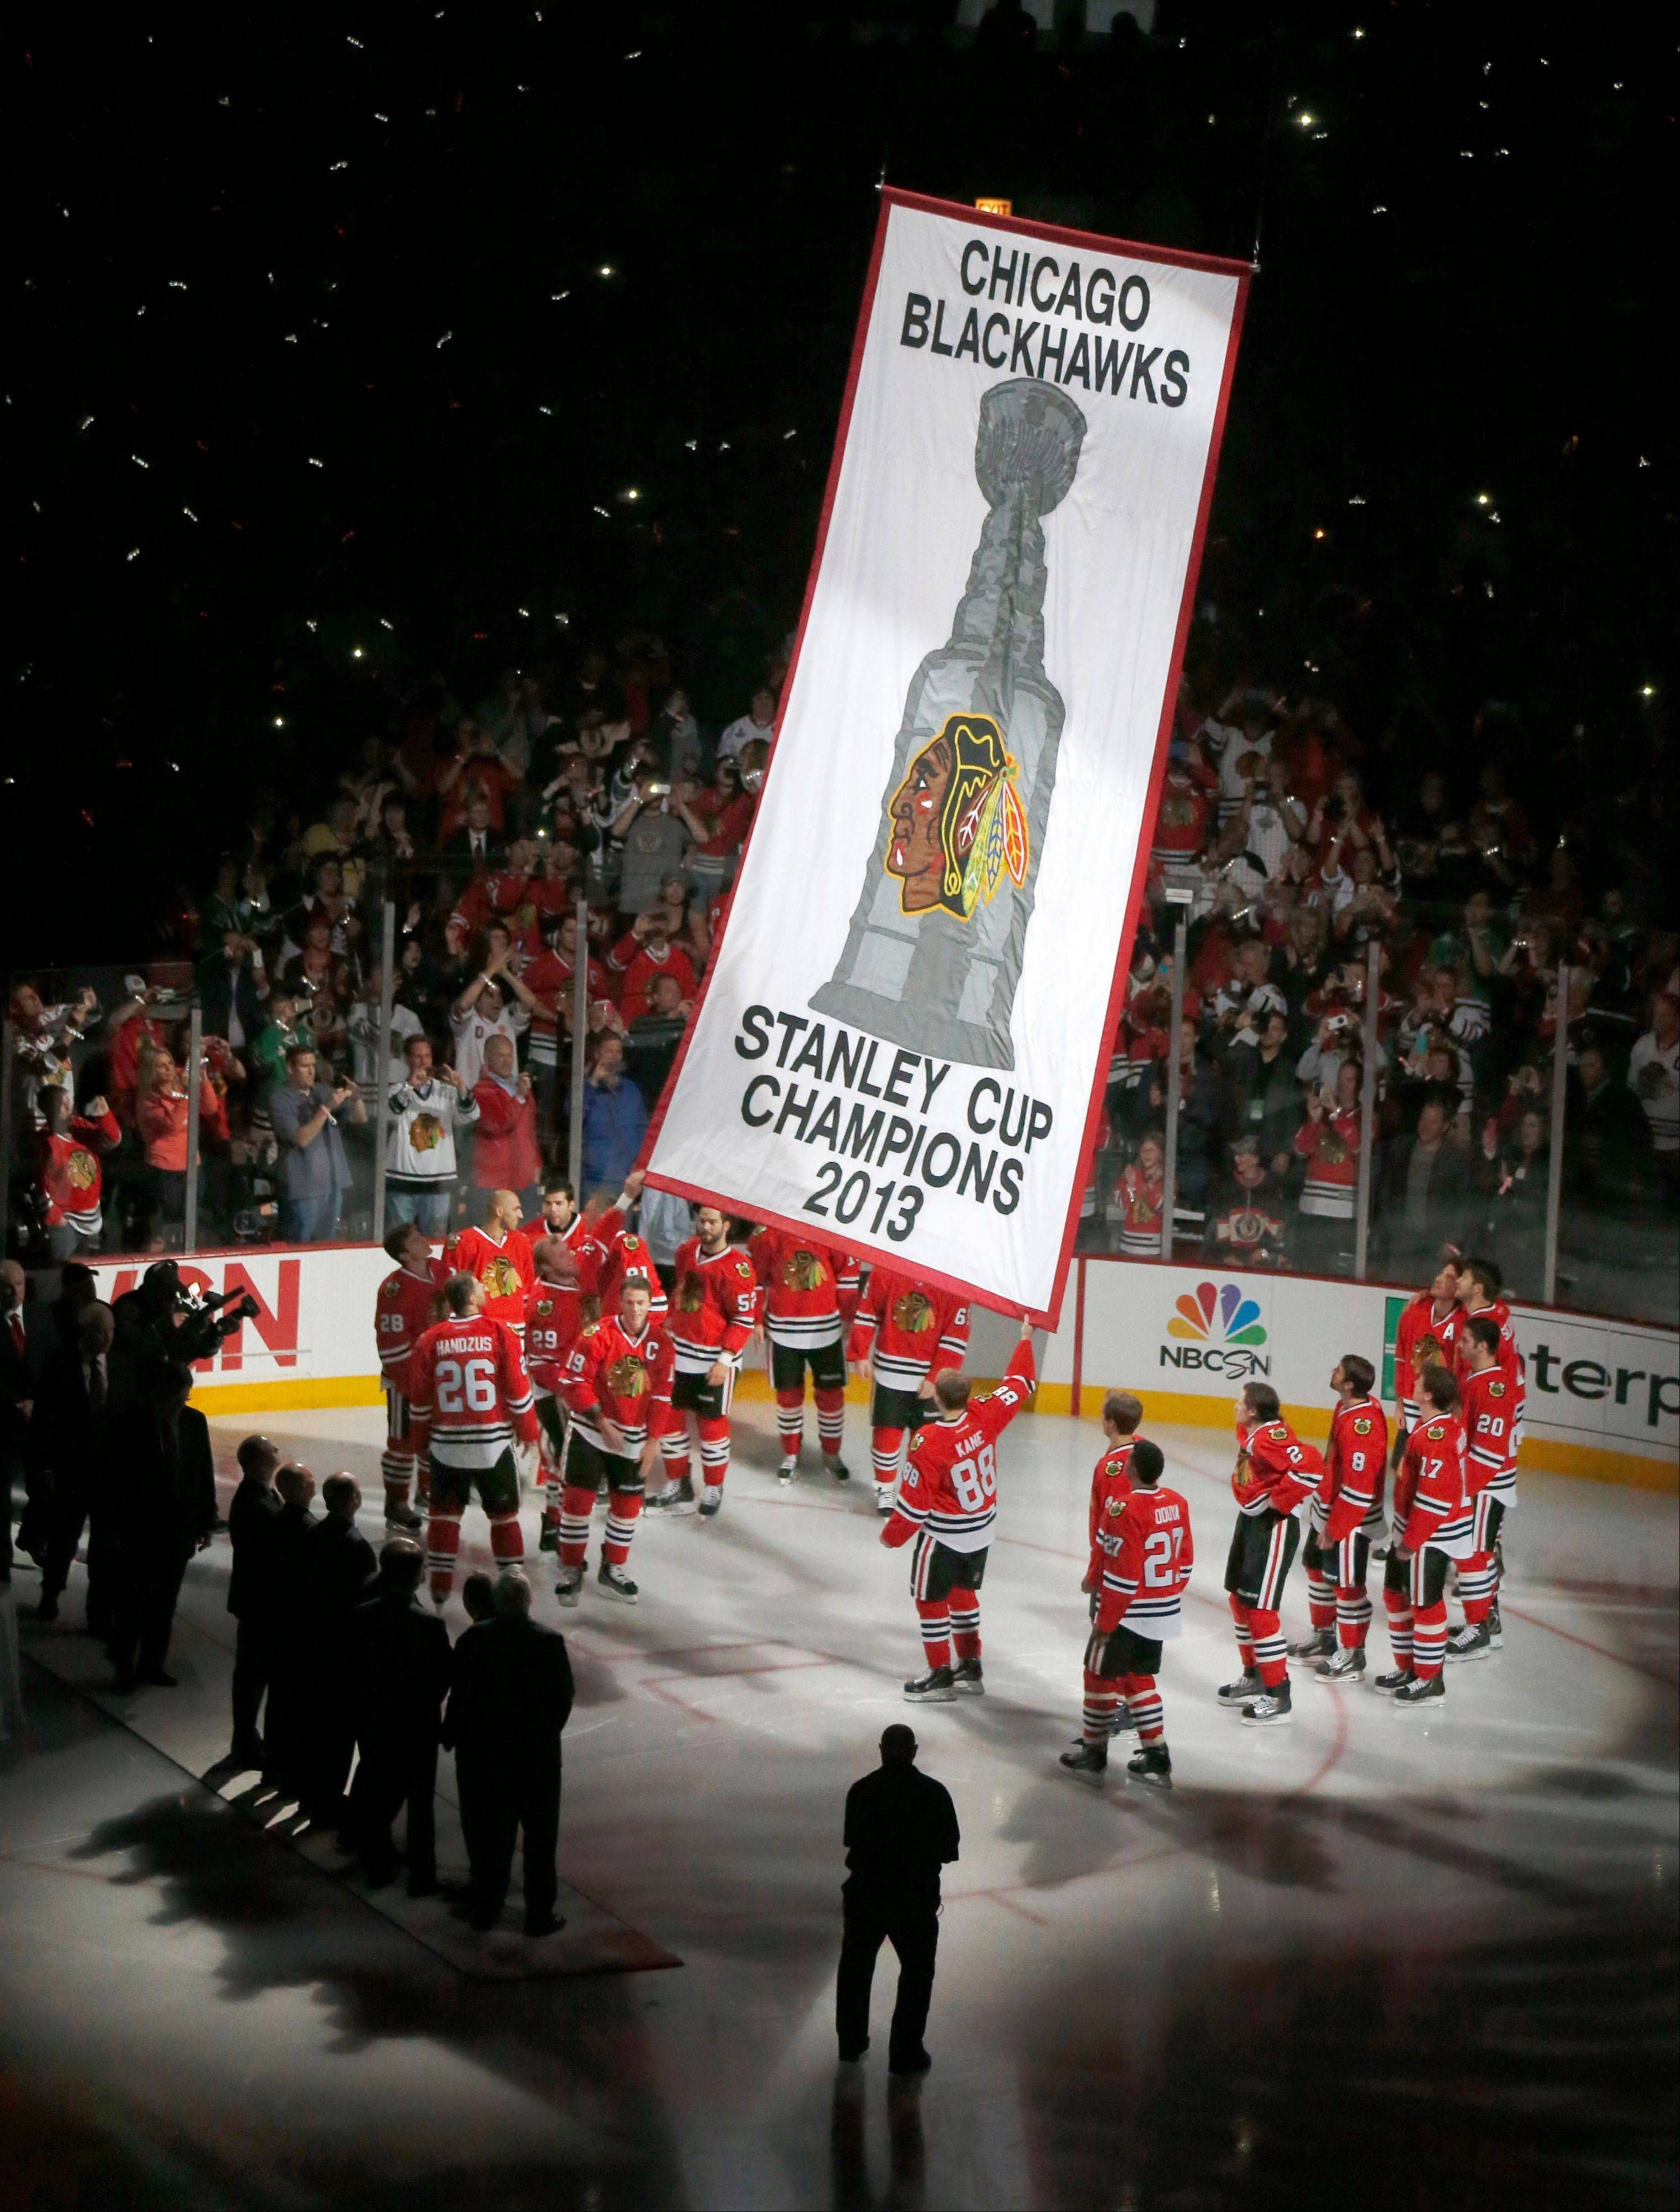 In this Oct. 1, 2013 file photo, Chicago Blackhawks players watch as their Stanley Cup Championship banner is lifted to the rafters during ceremonies before an NHL hockey game between the Blackhawks and Washington Capitals in Chicago. The story was voted as one of the top 10 stories in Illinois for 2013.